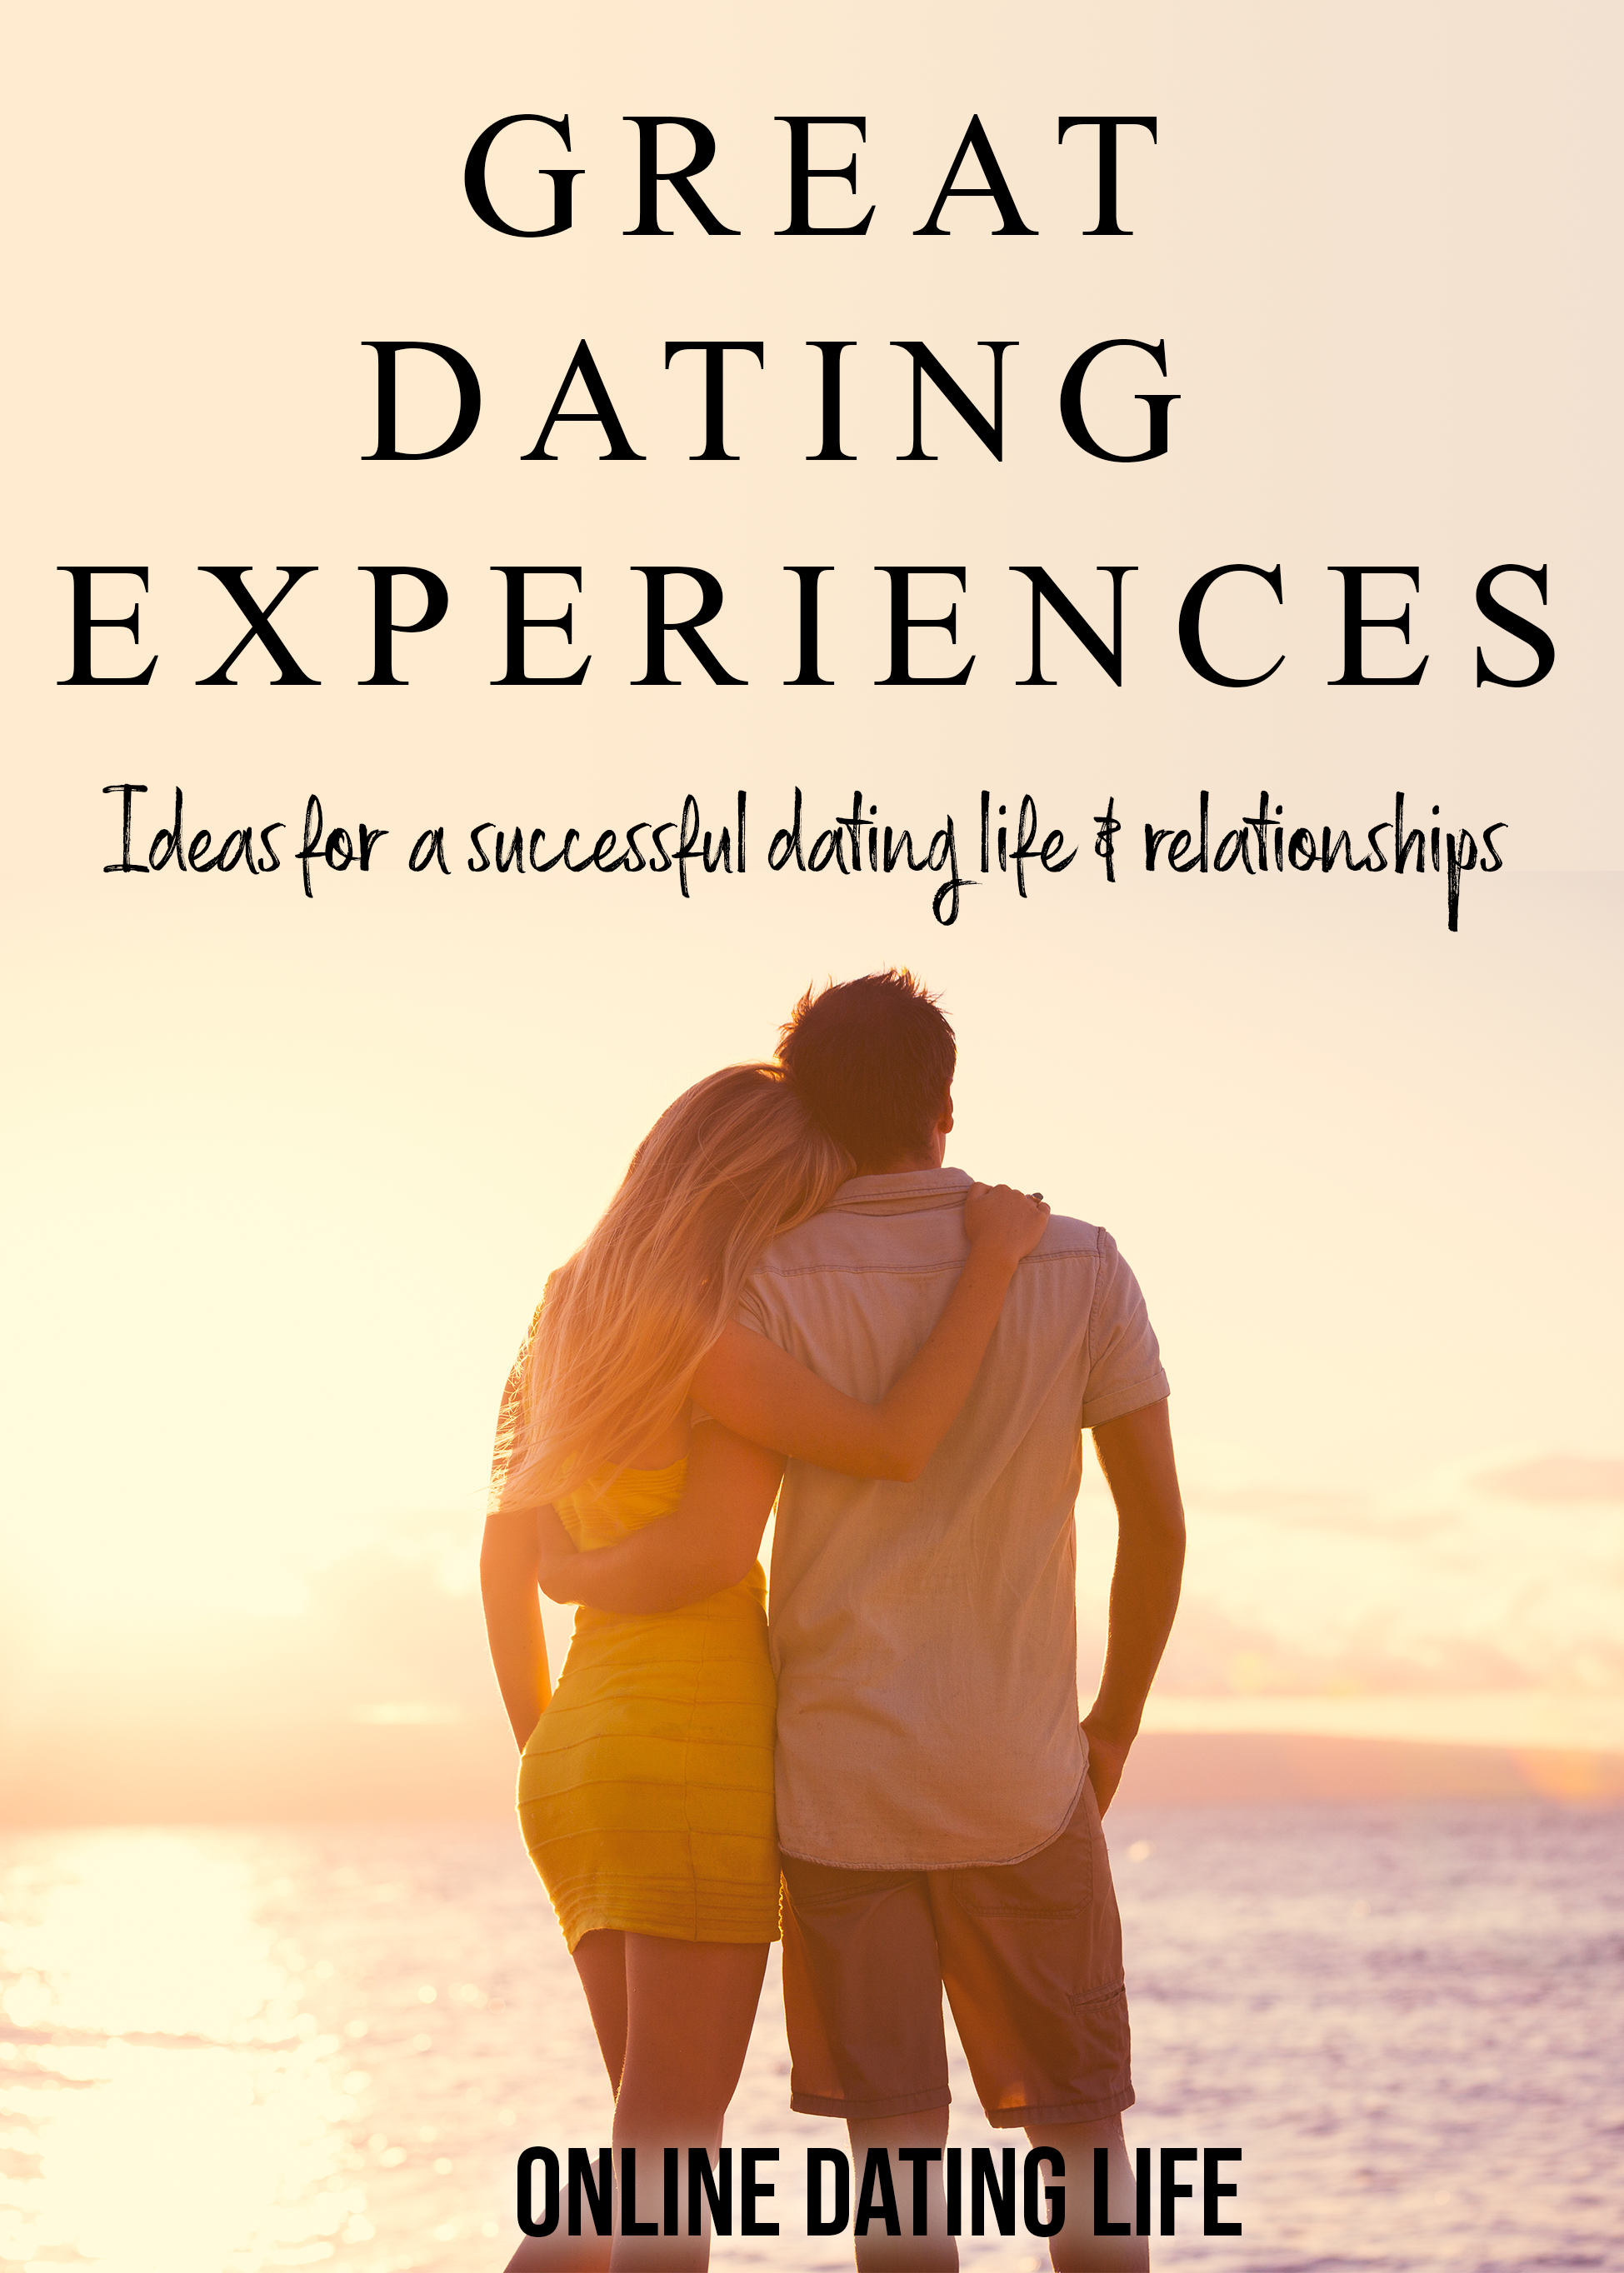 Online dating experiences